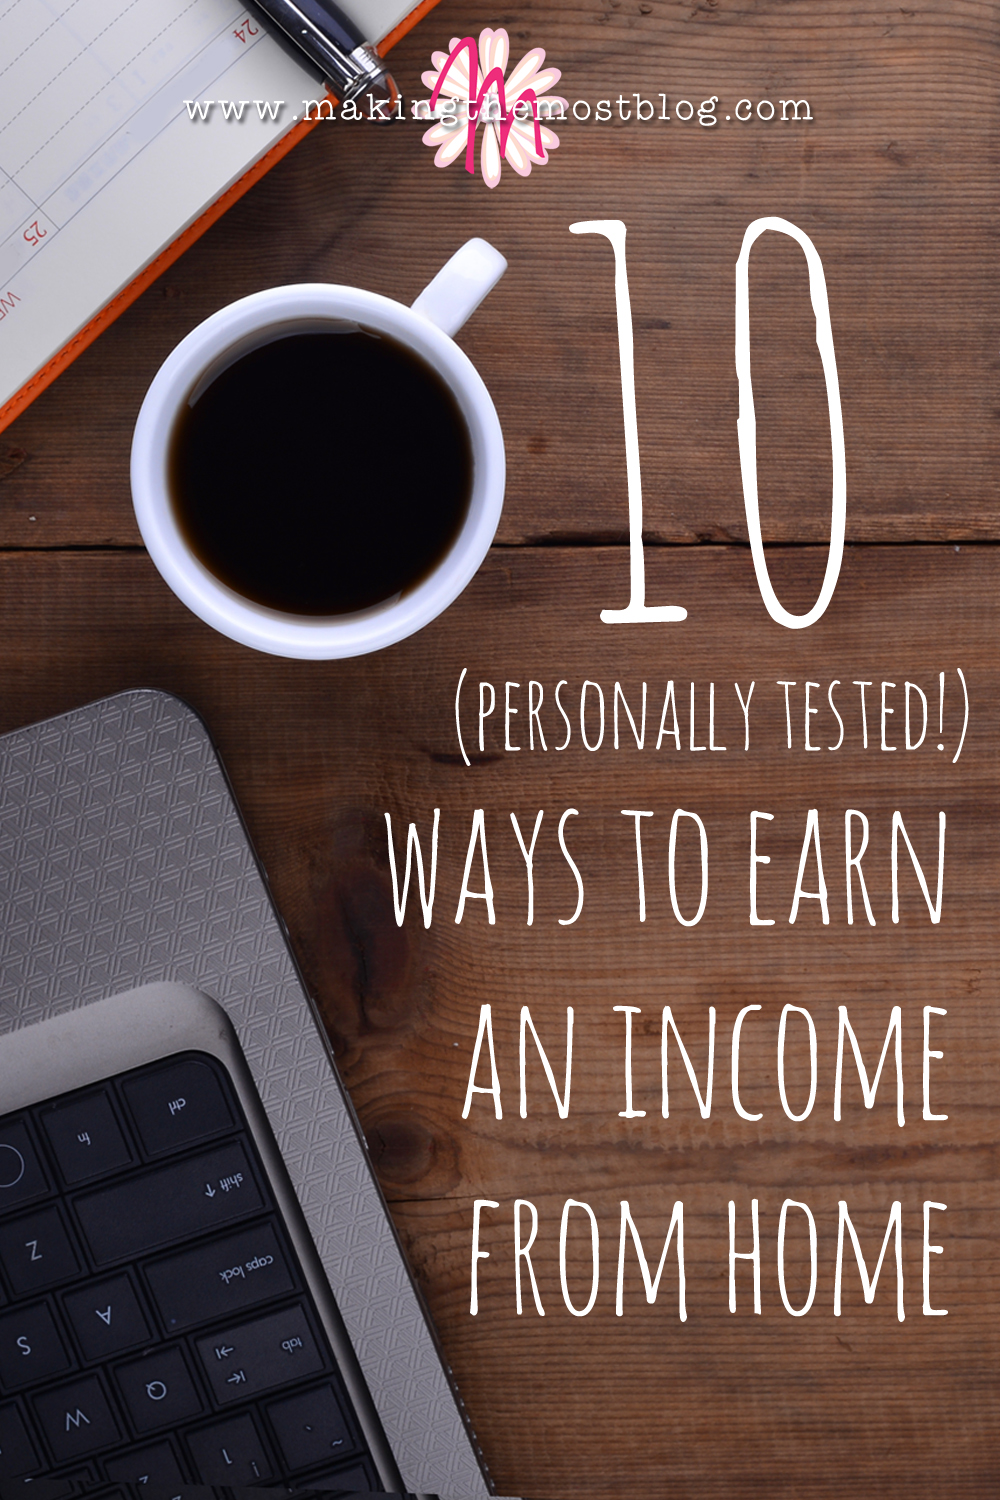 10 (Personally Tested!) Ways to Earn an Income from Home | Making the Most Blog